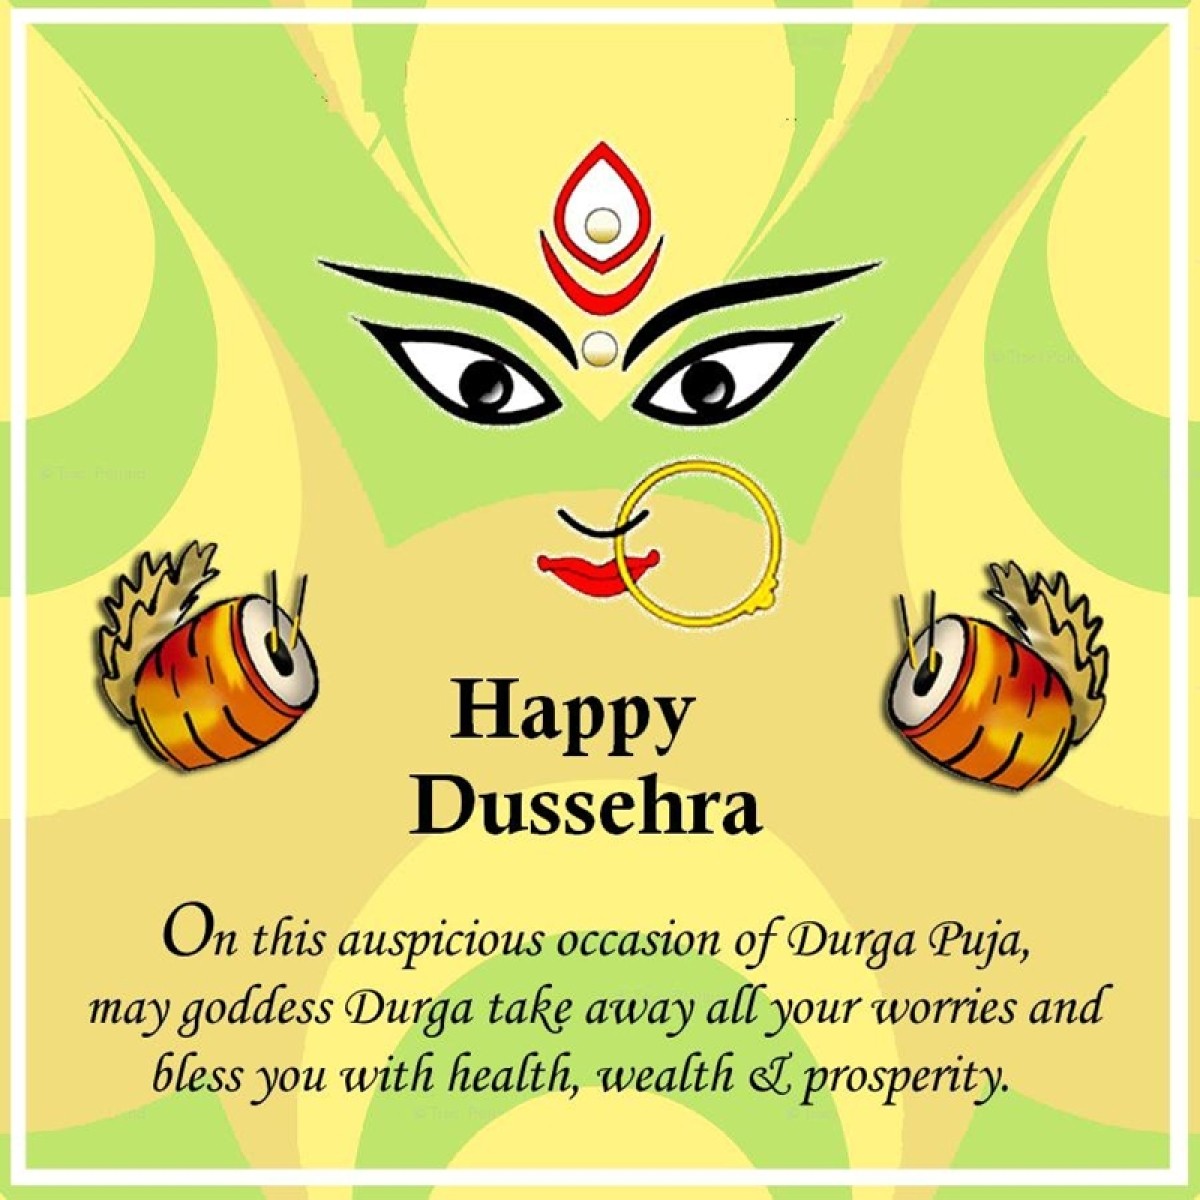 Dussehra 2018: Wishes, greetings, images to share on SMS, WhatsApp, Facebook